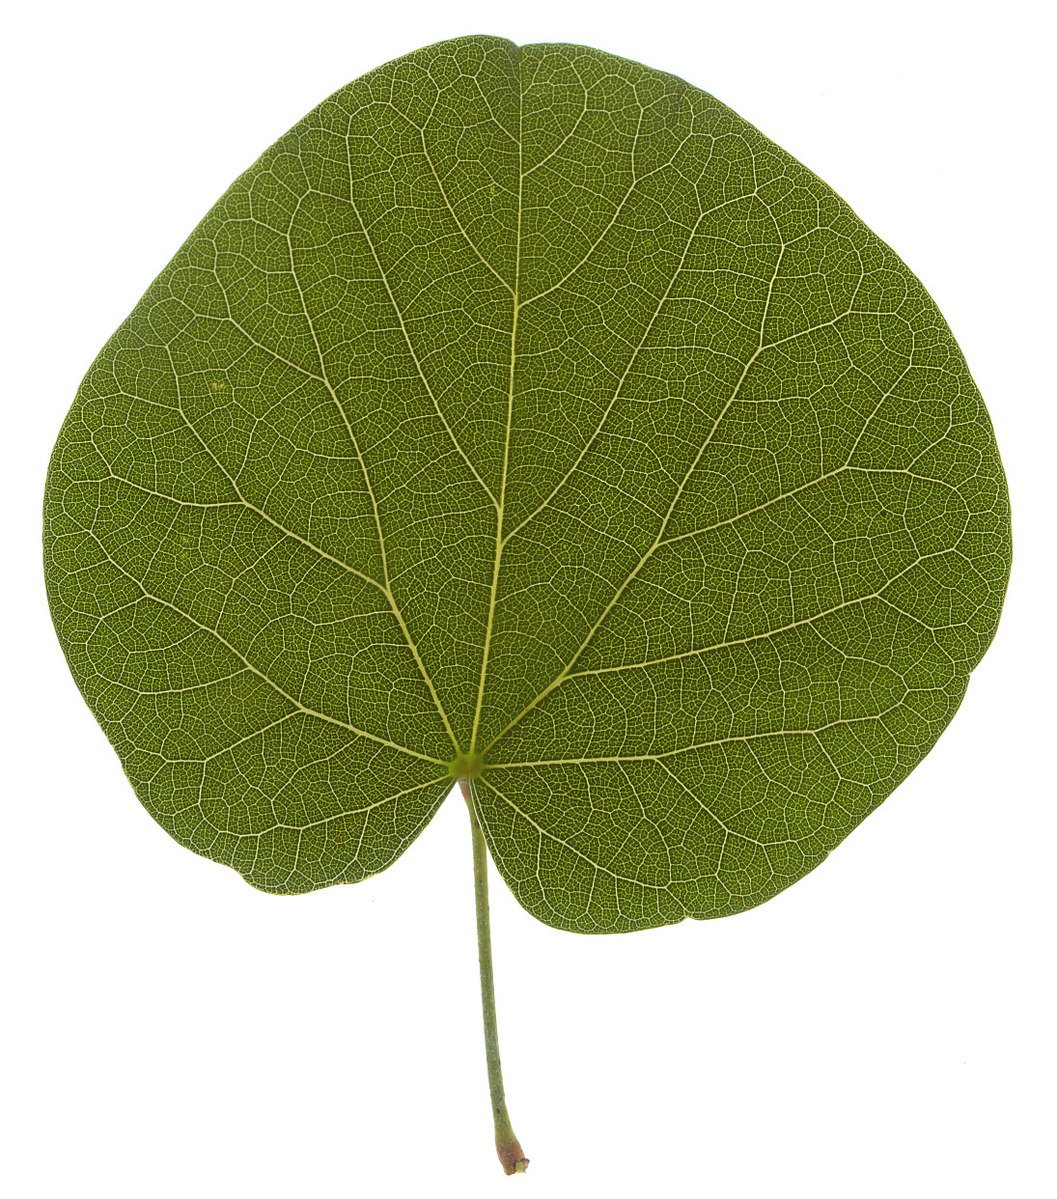 Free Leaf Texture Stock Photo Freeimages Com Almost files can be used for commercial. free leaf texture stock photo